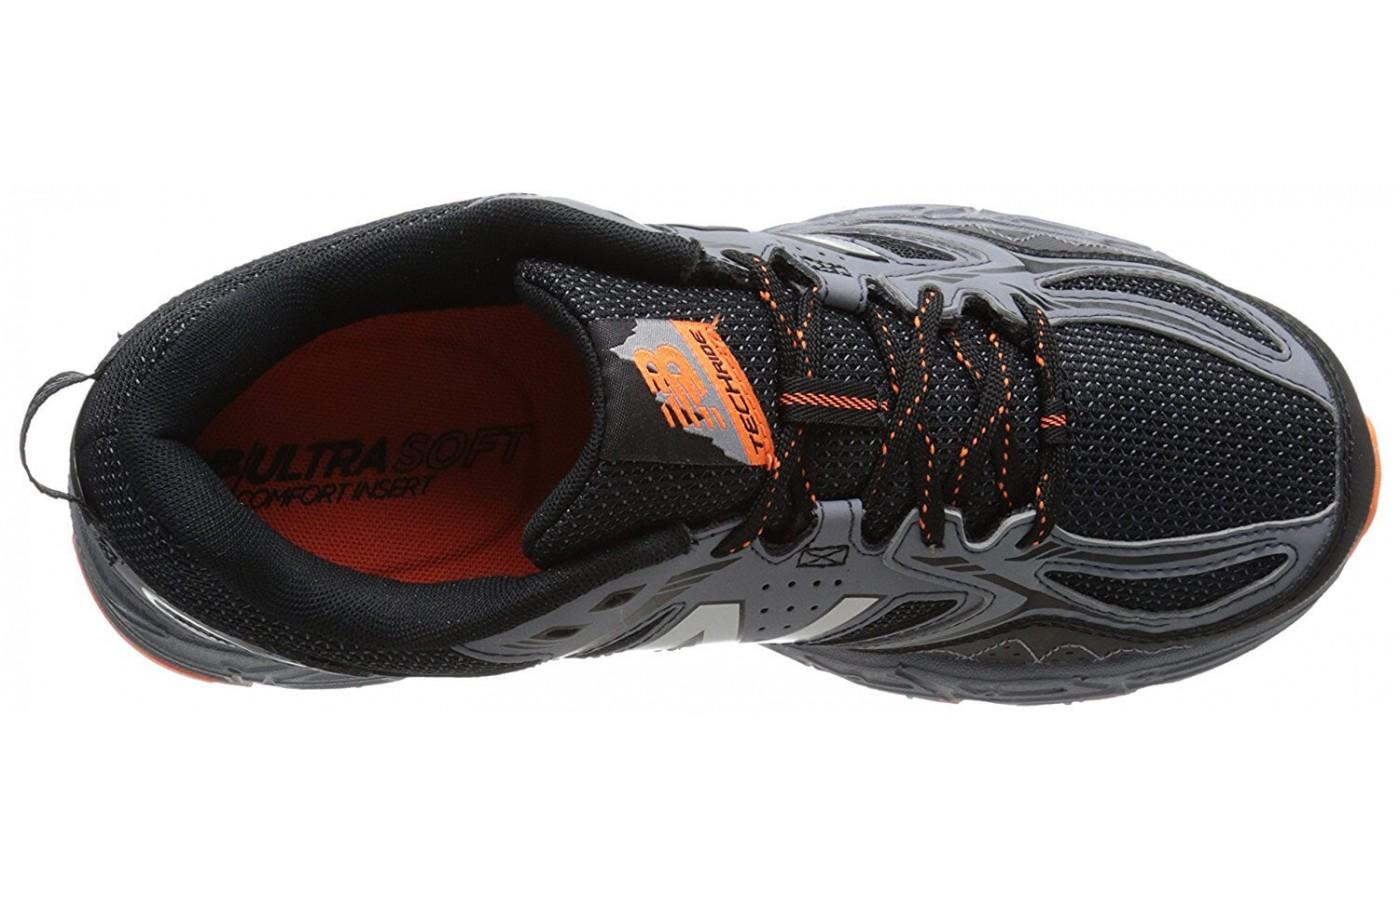 The breathable upper provides a comfortable ride.